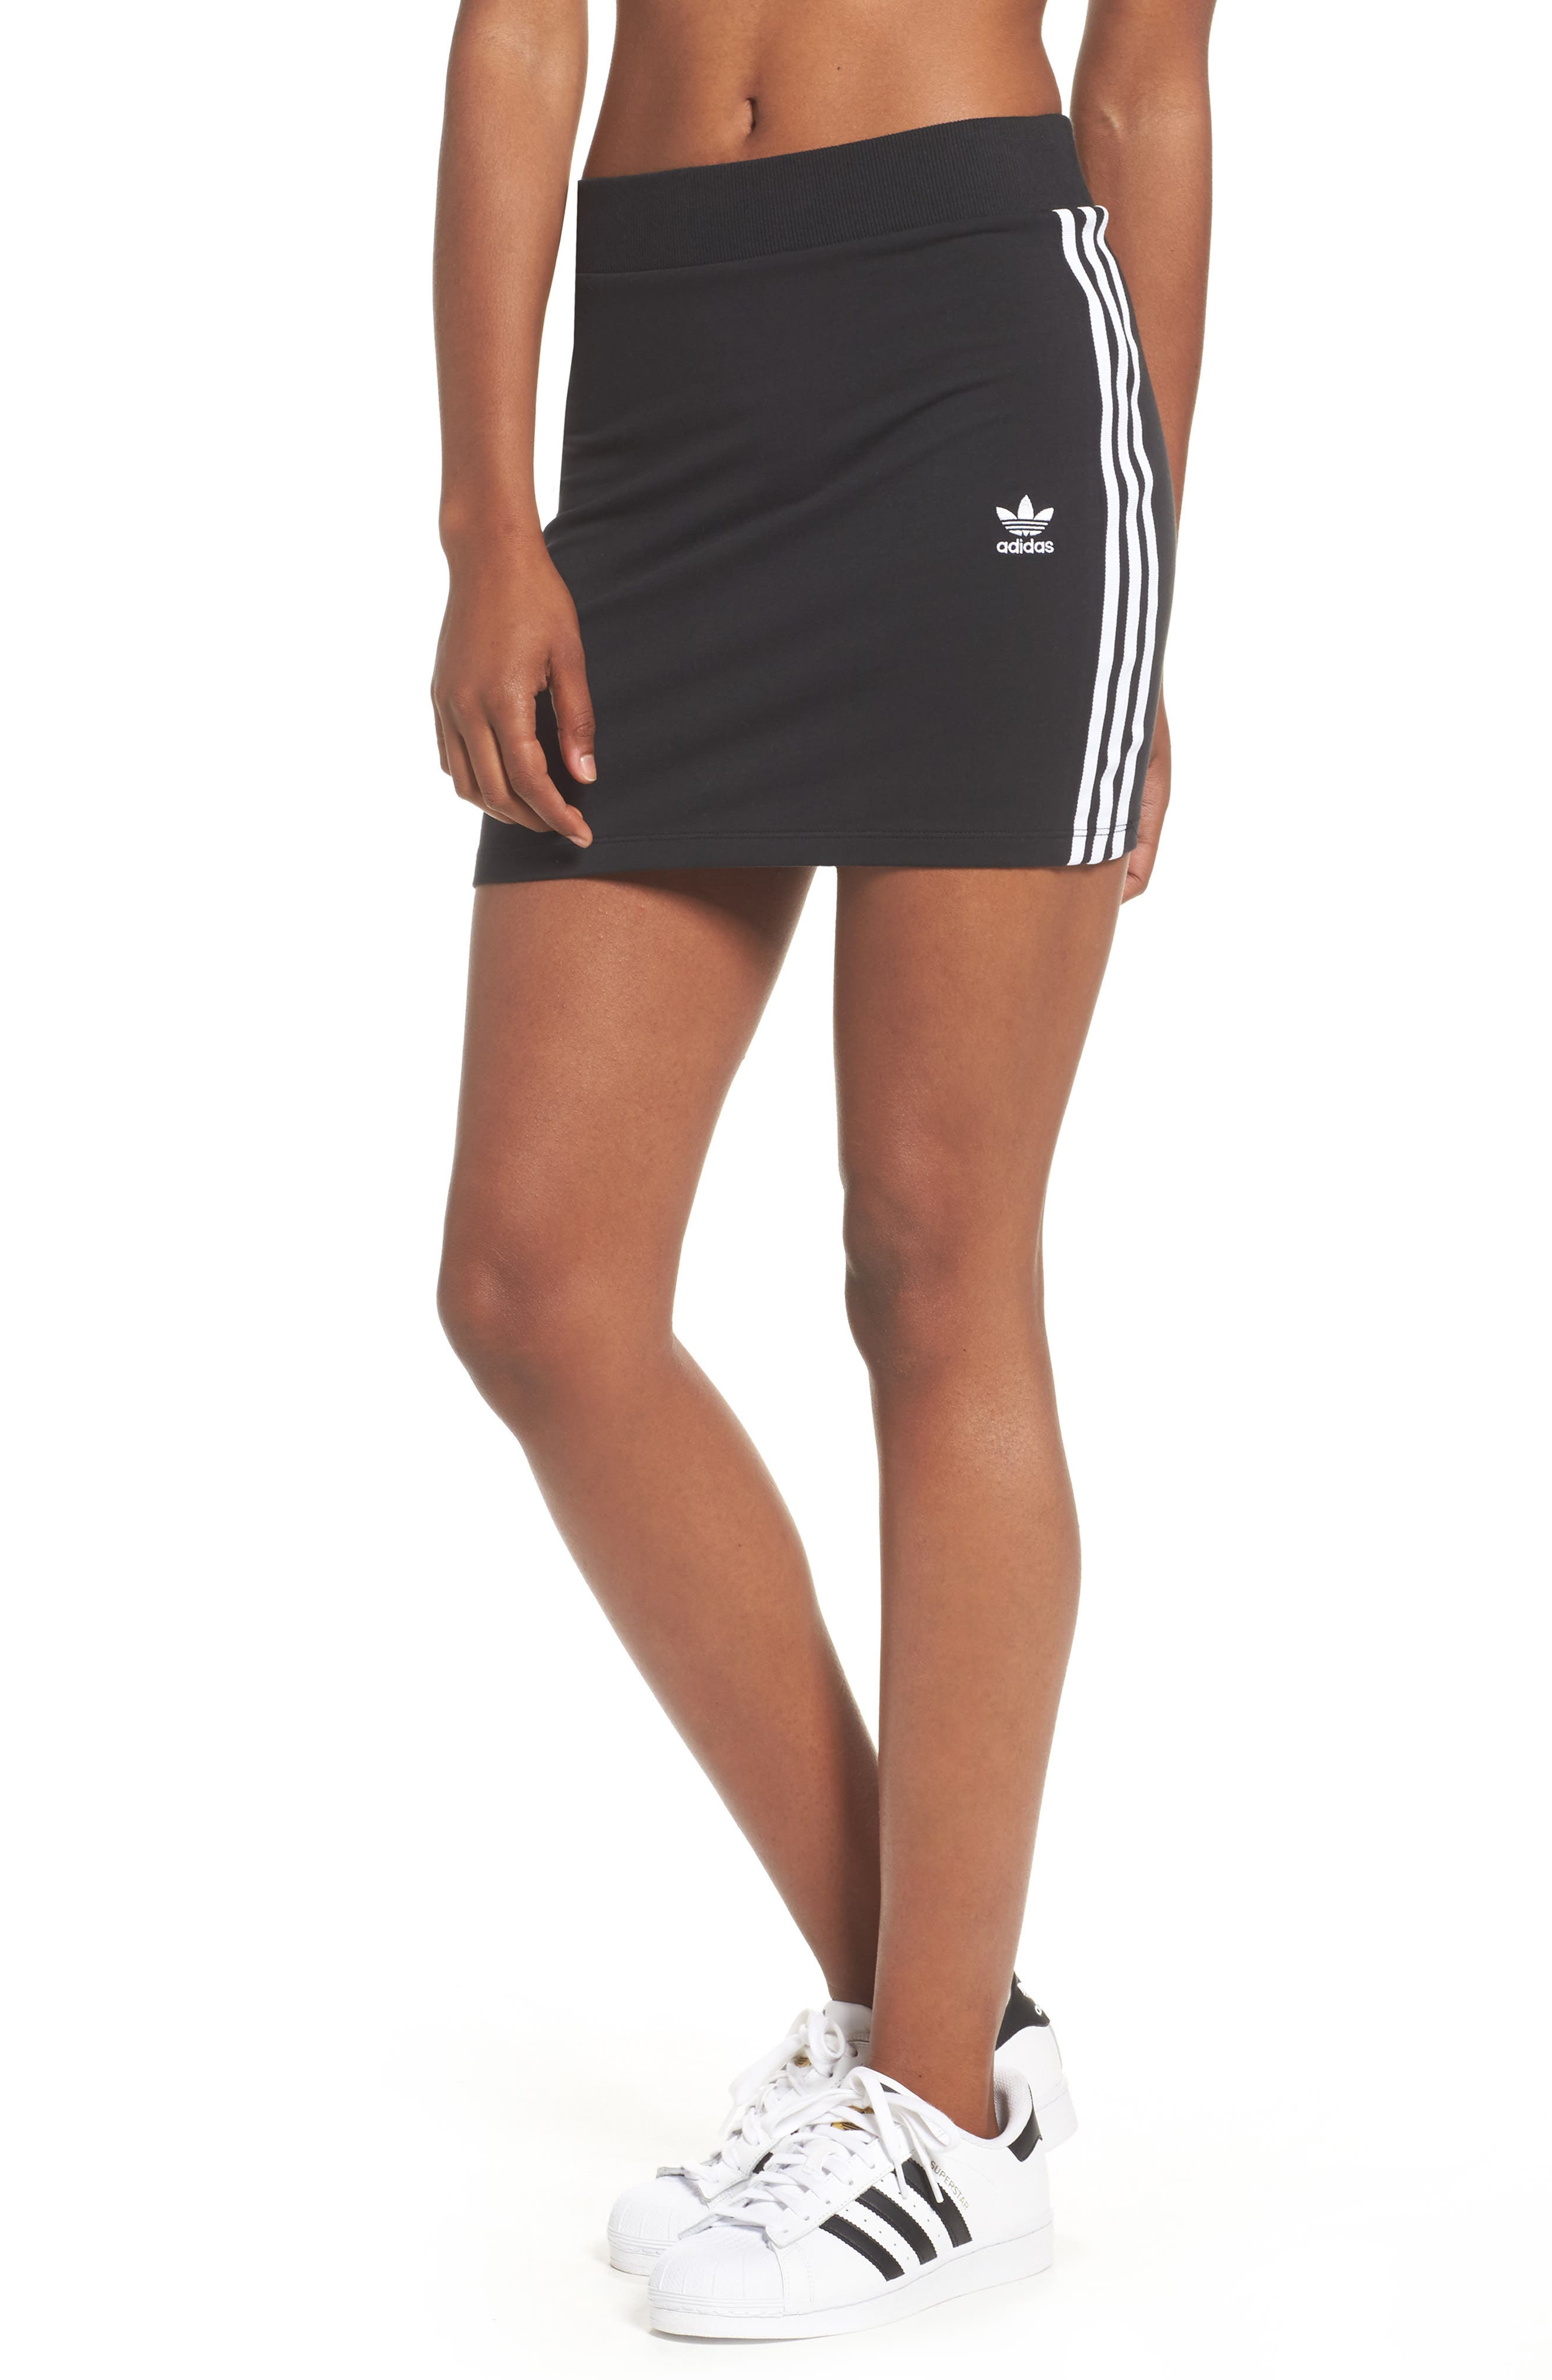 Adidas Originals 3-Stripes Miniskirt